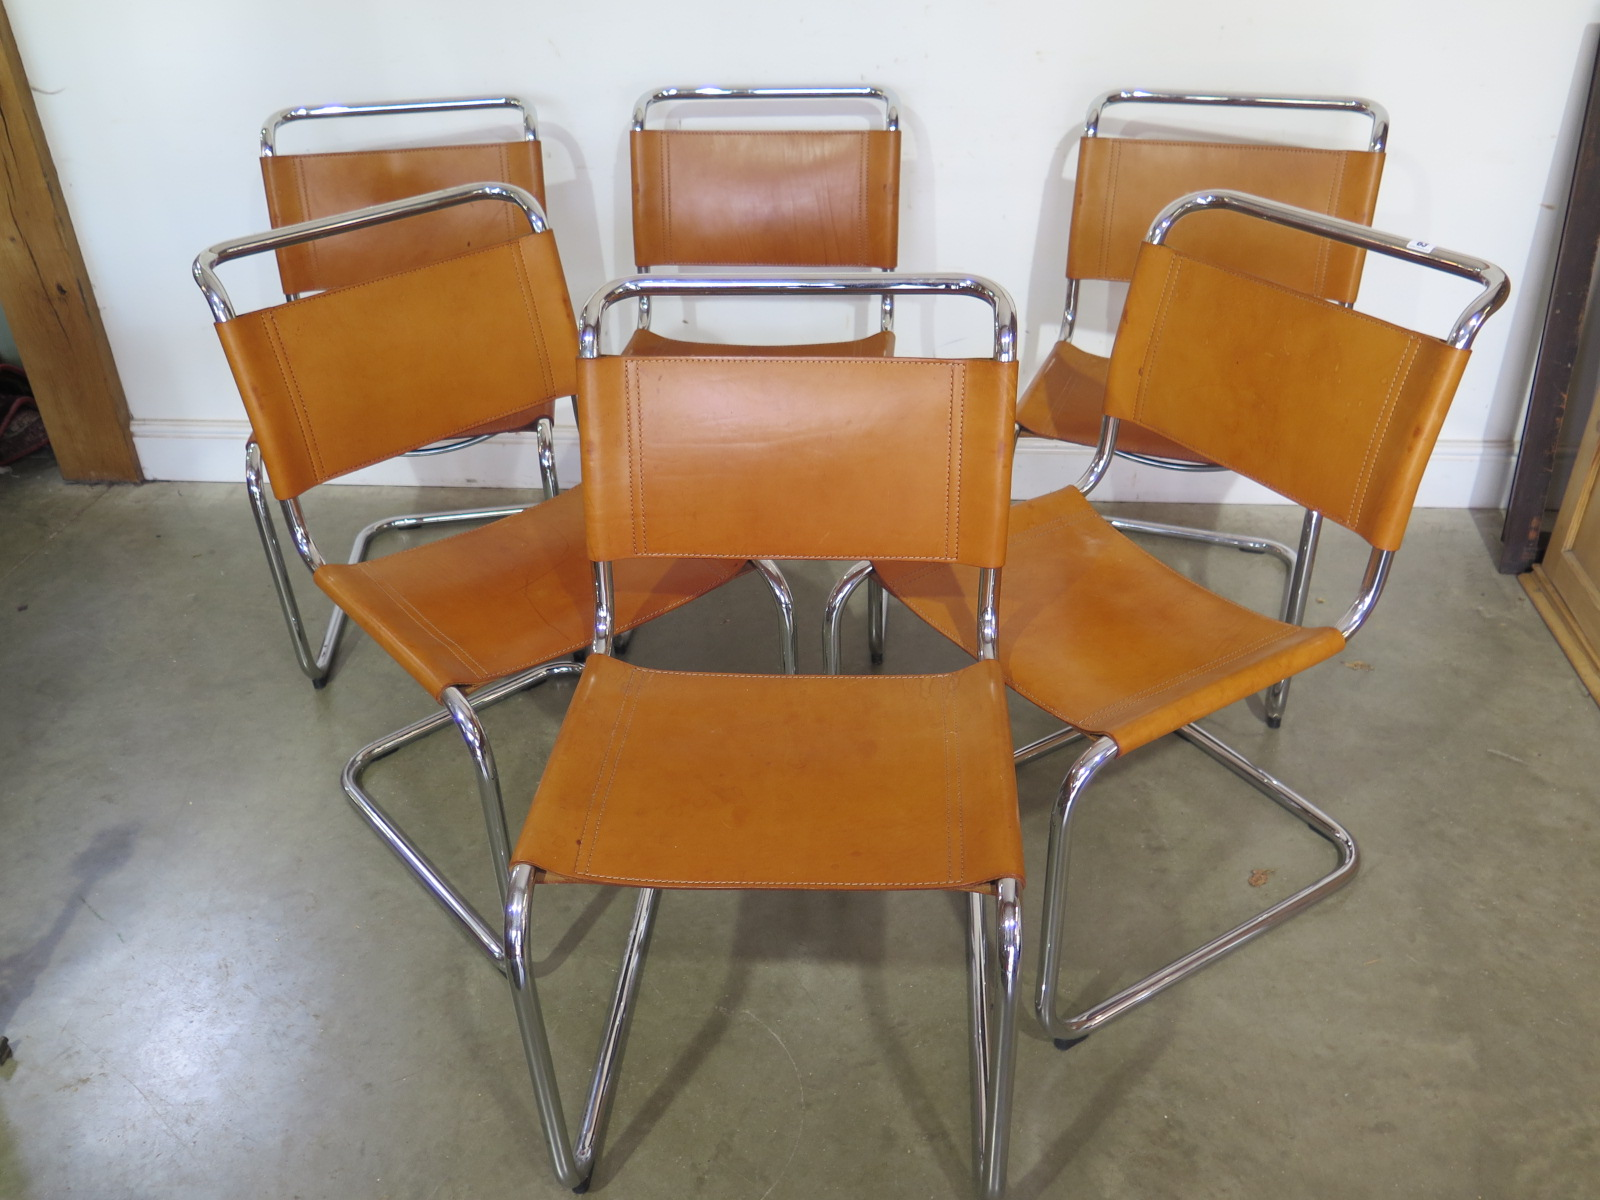 Groovy A Set Of Six Chrome And Leather Colombo Dining Chairs From A Pdpeps Interior Chair Design Pdpepsorg